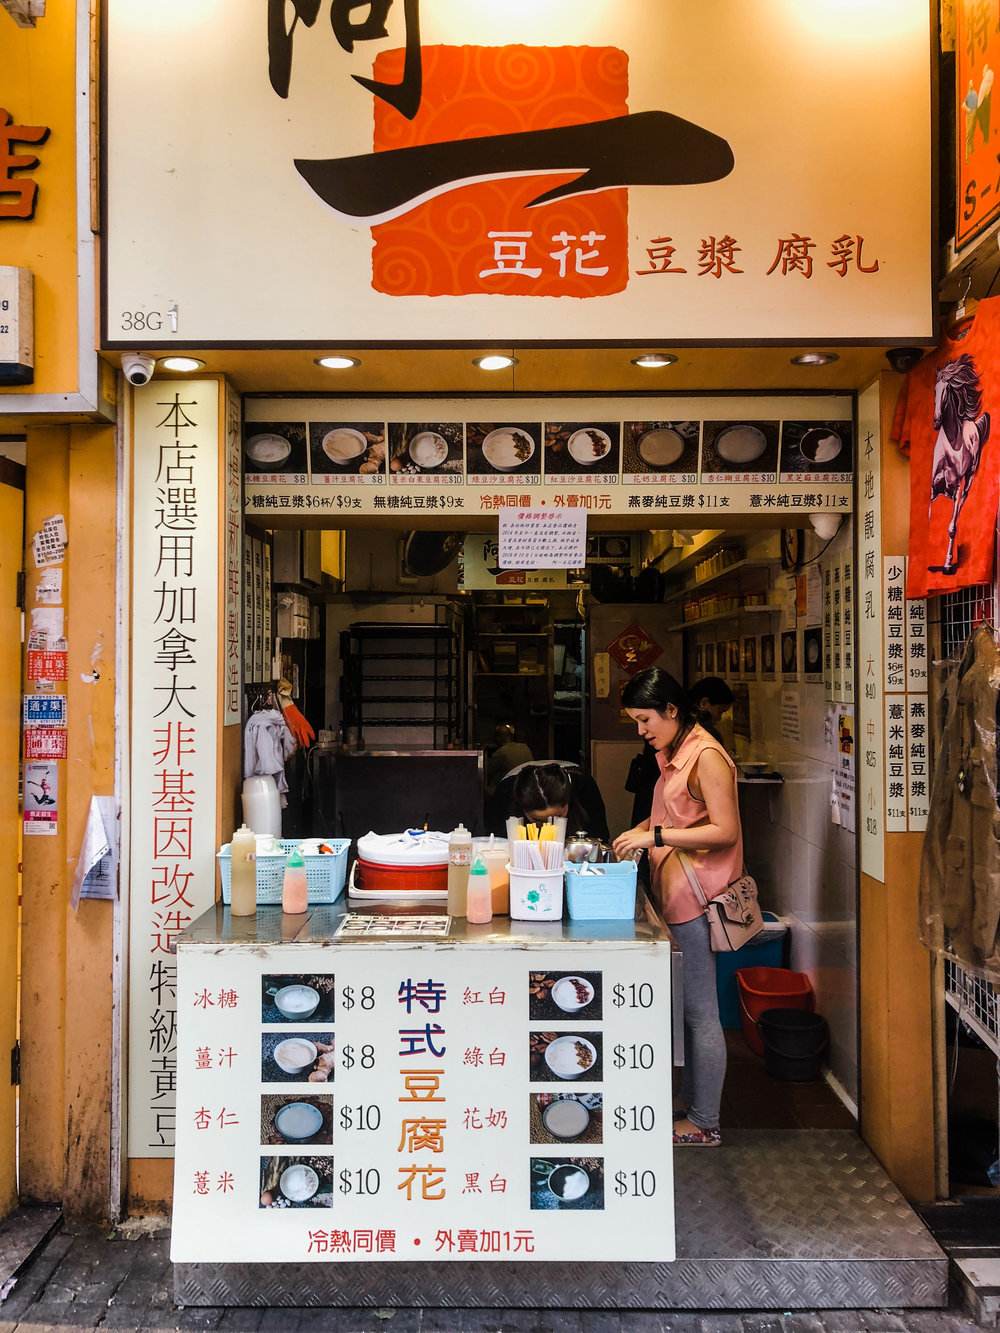 A1 Tofu Company in Hong Kong